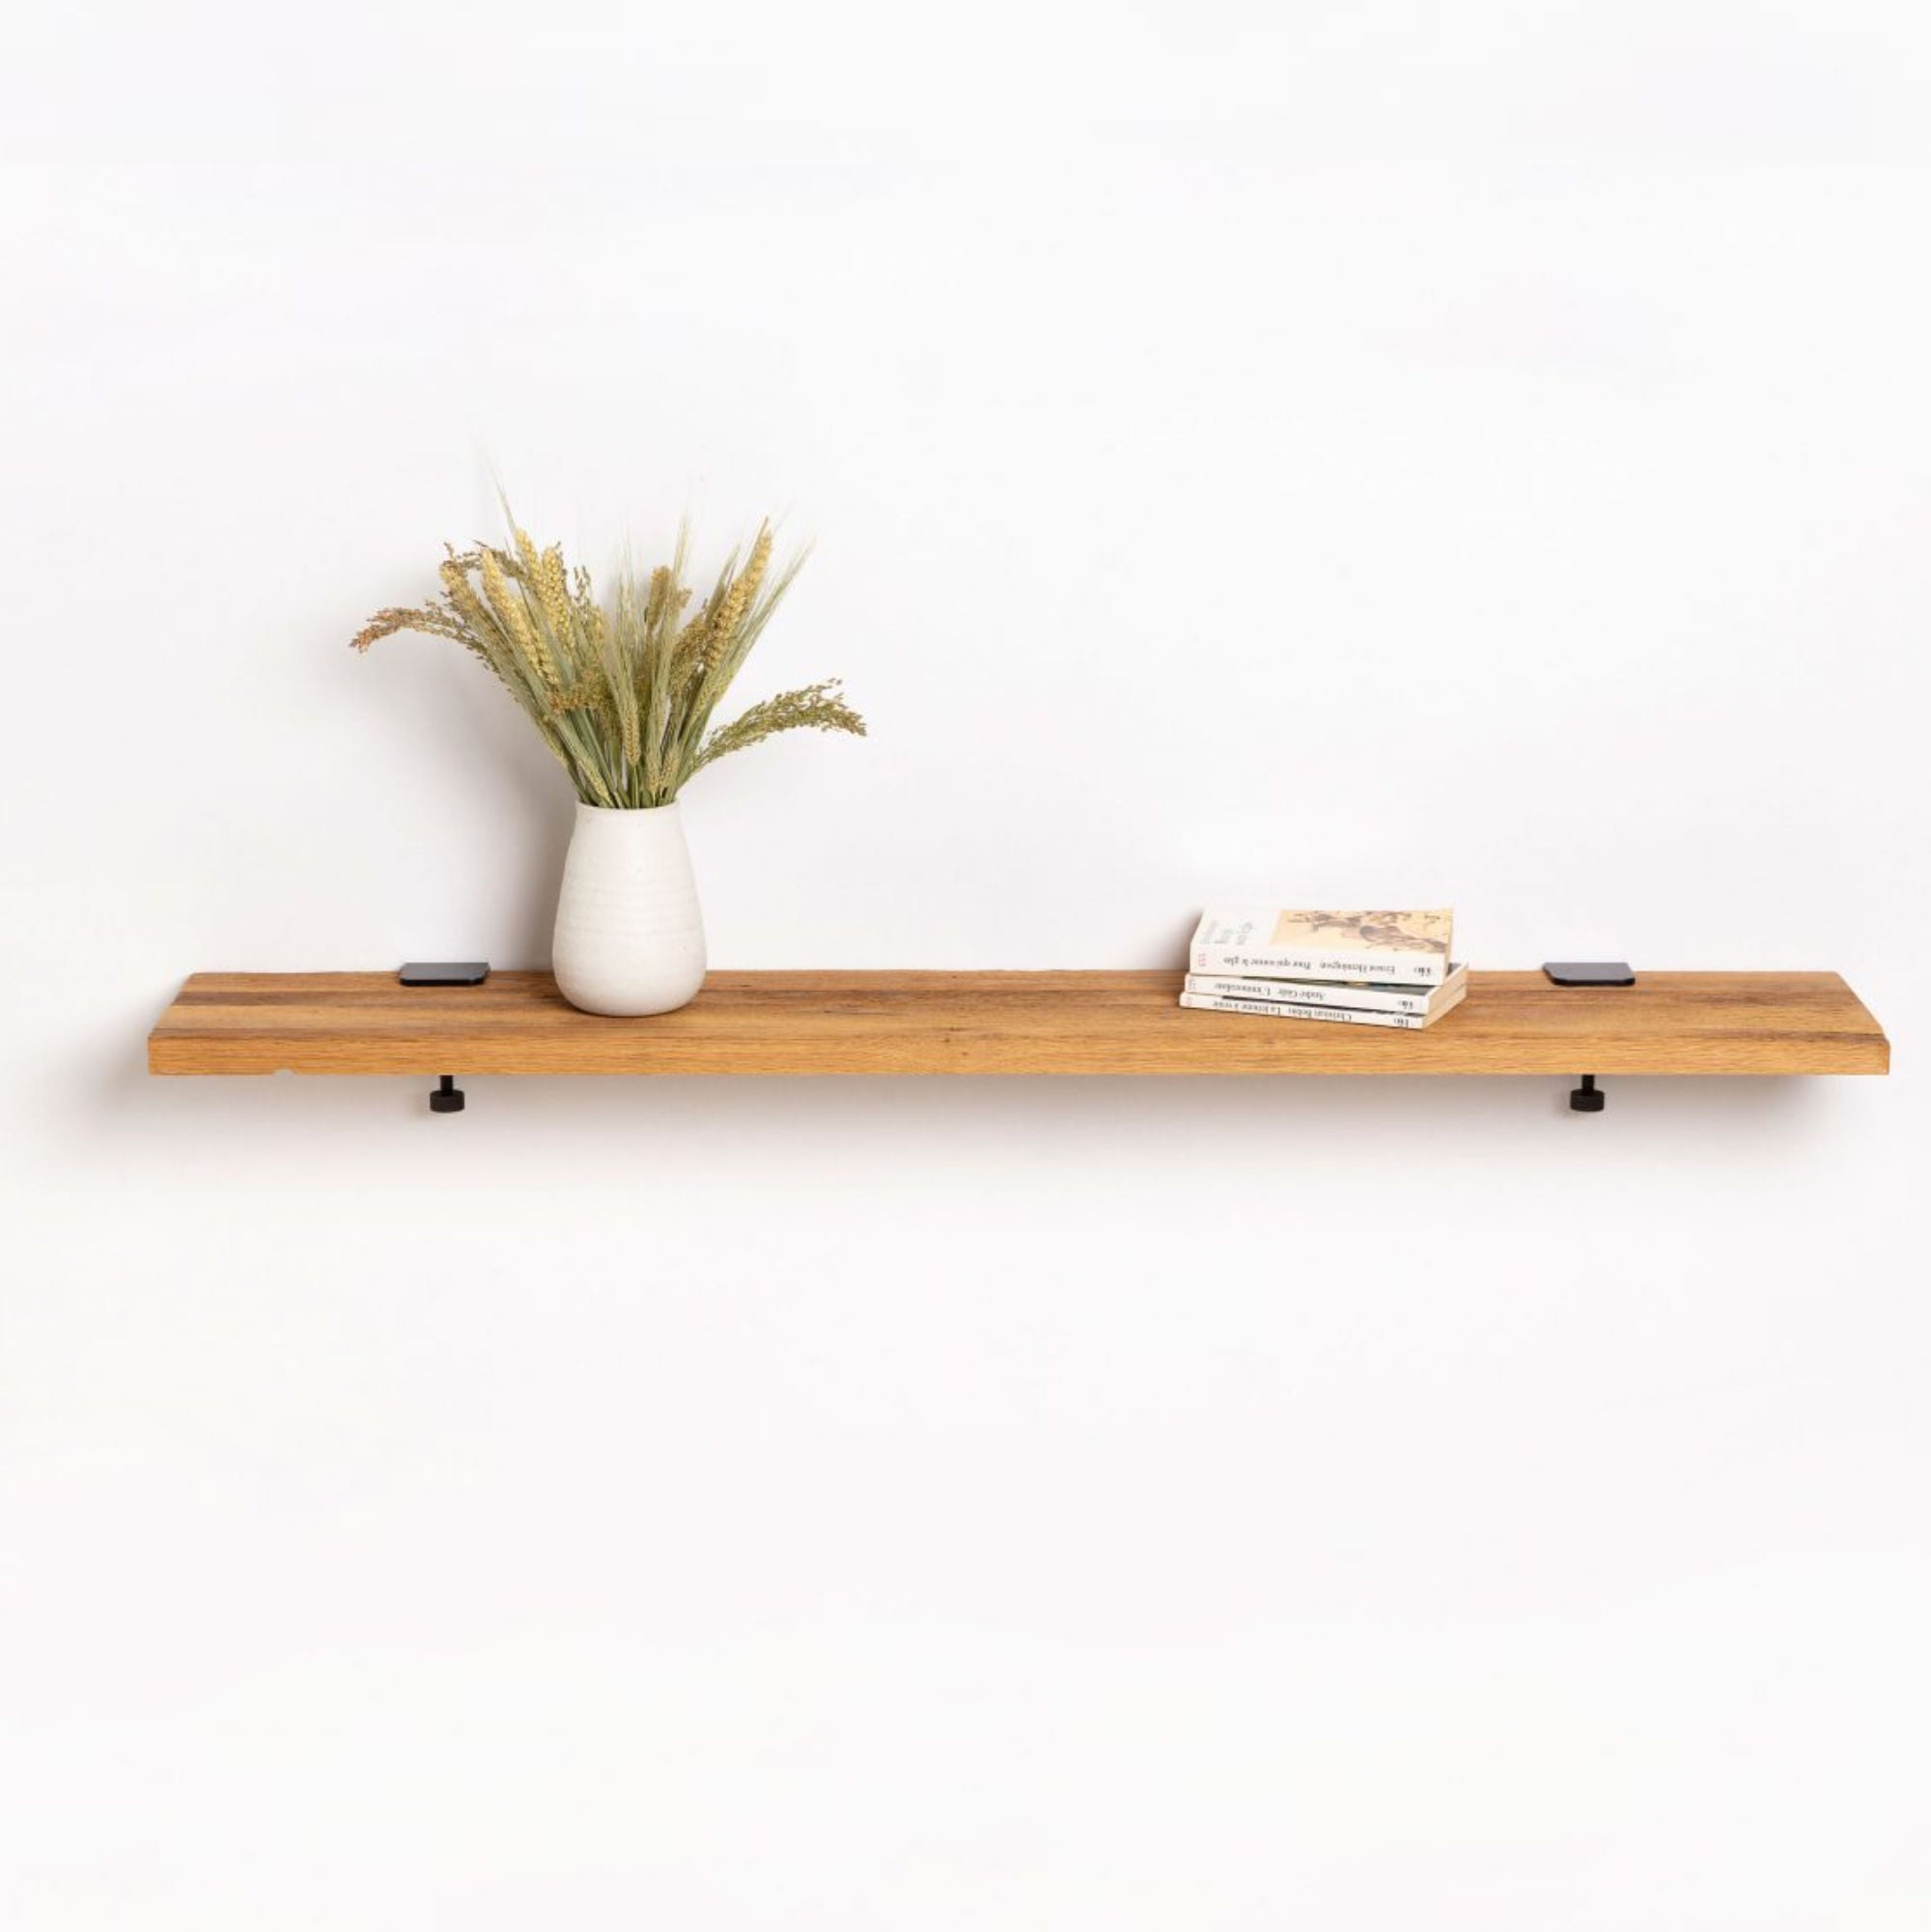 Tiptoe Reclaimed wood shelf, 120 * 20cm